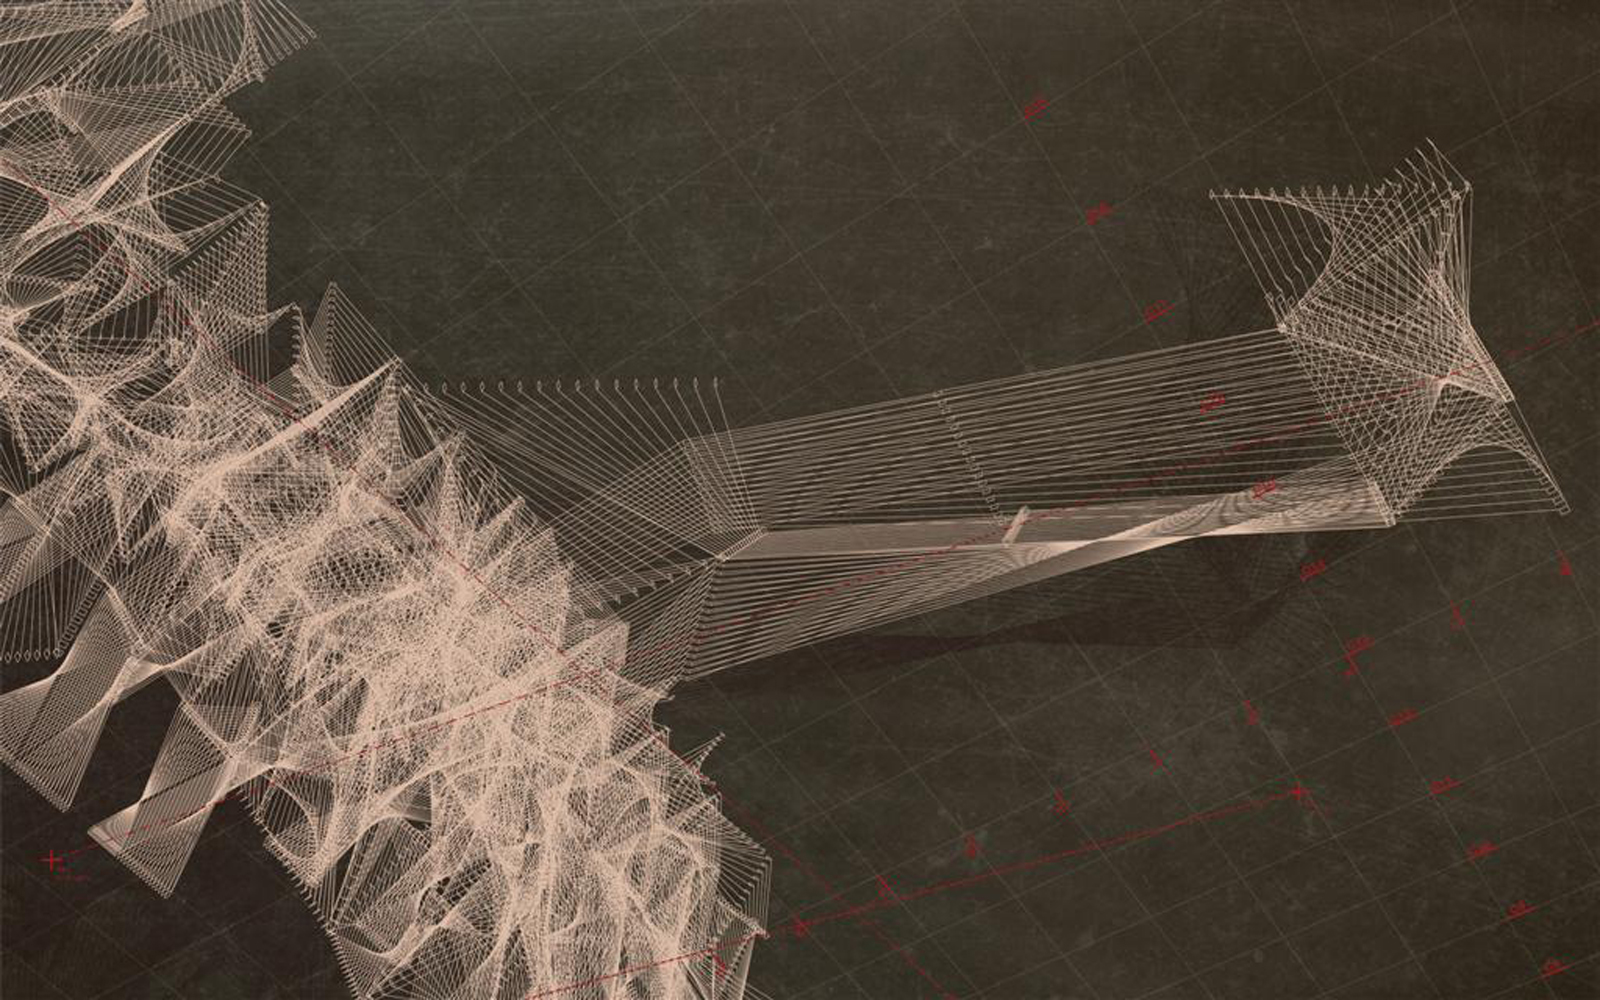 And another conceptual drawing of the installation.